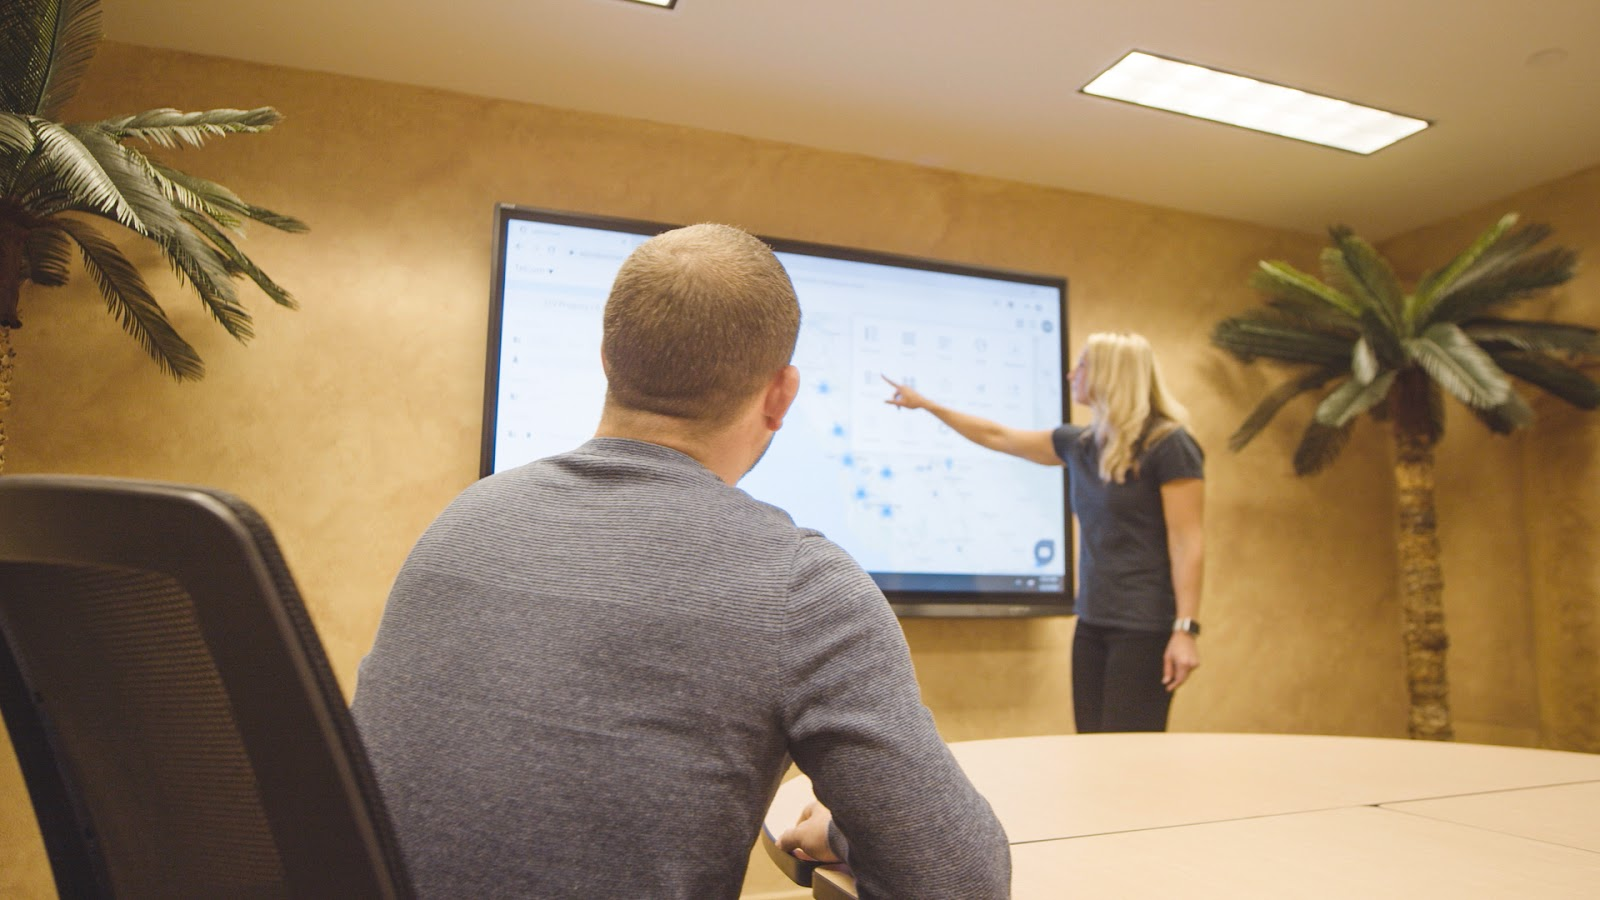 Woman demonstrates how to use a software on a touchscreen television to a man.